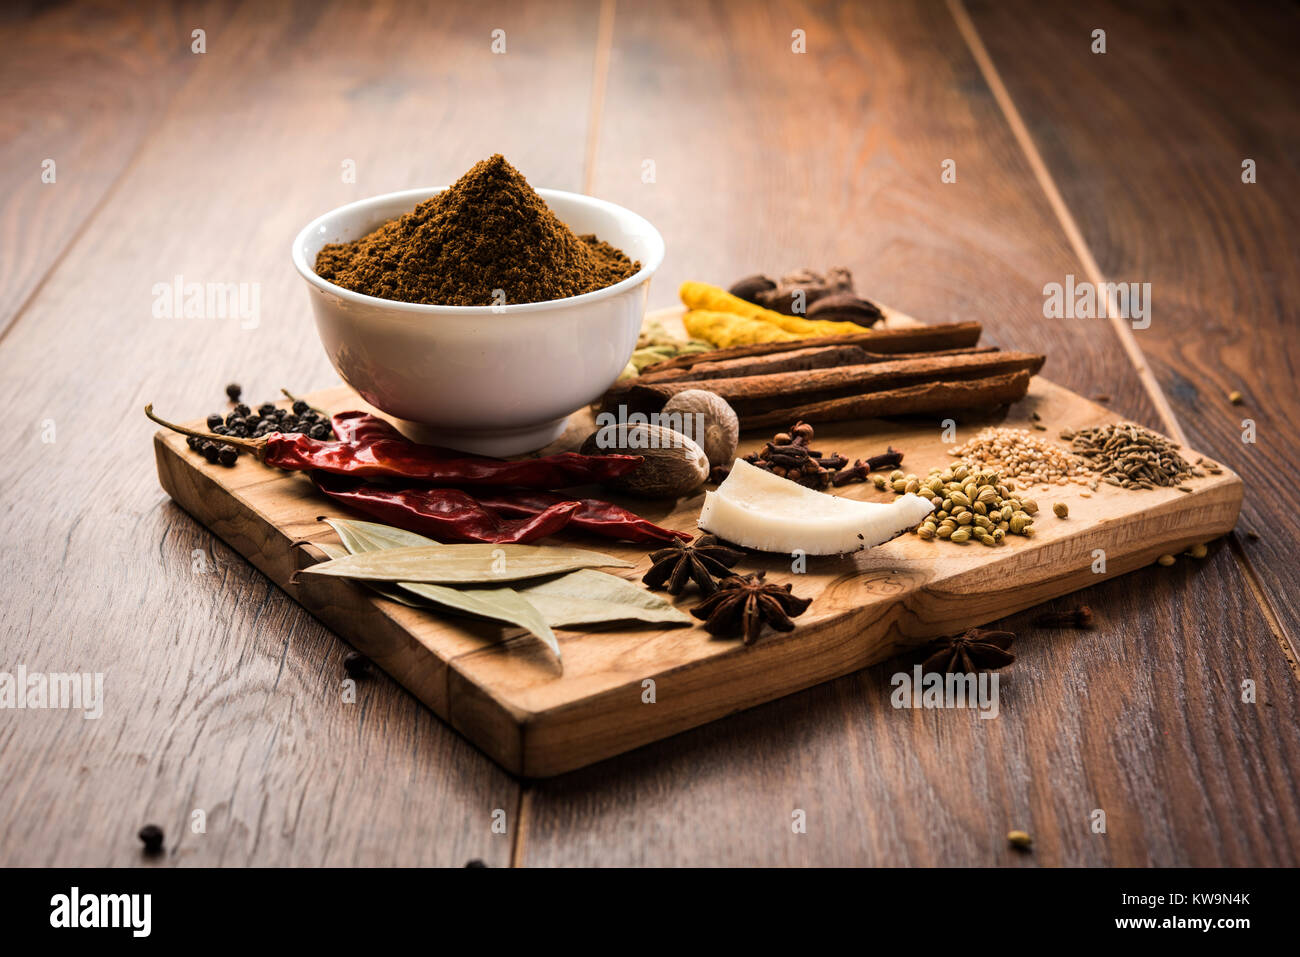 how to use garam masala